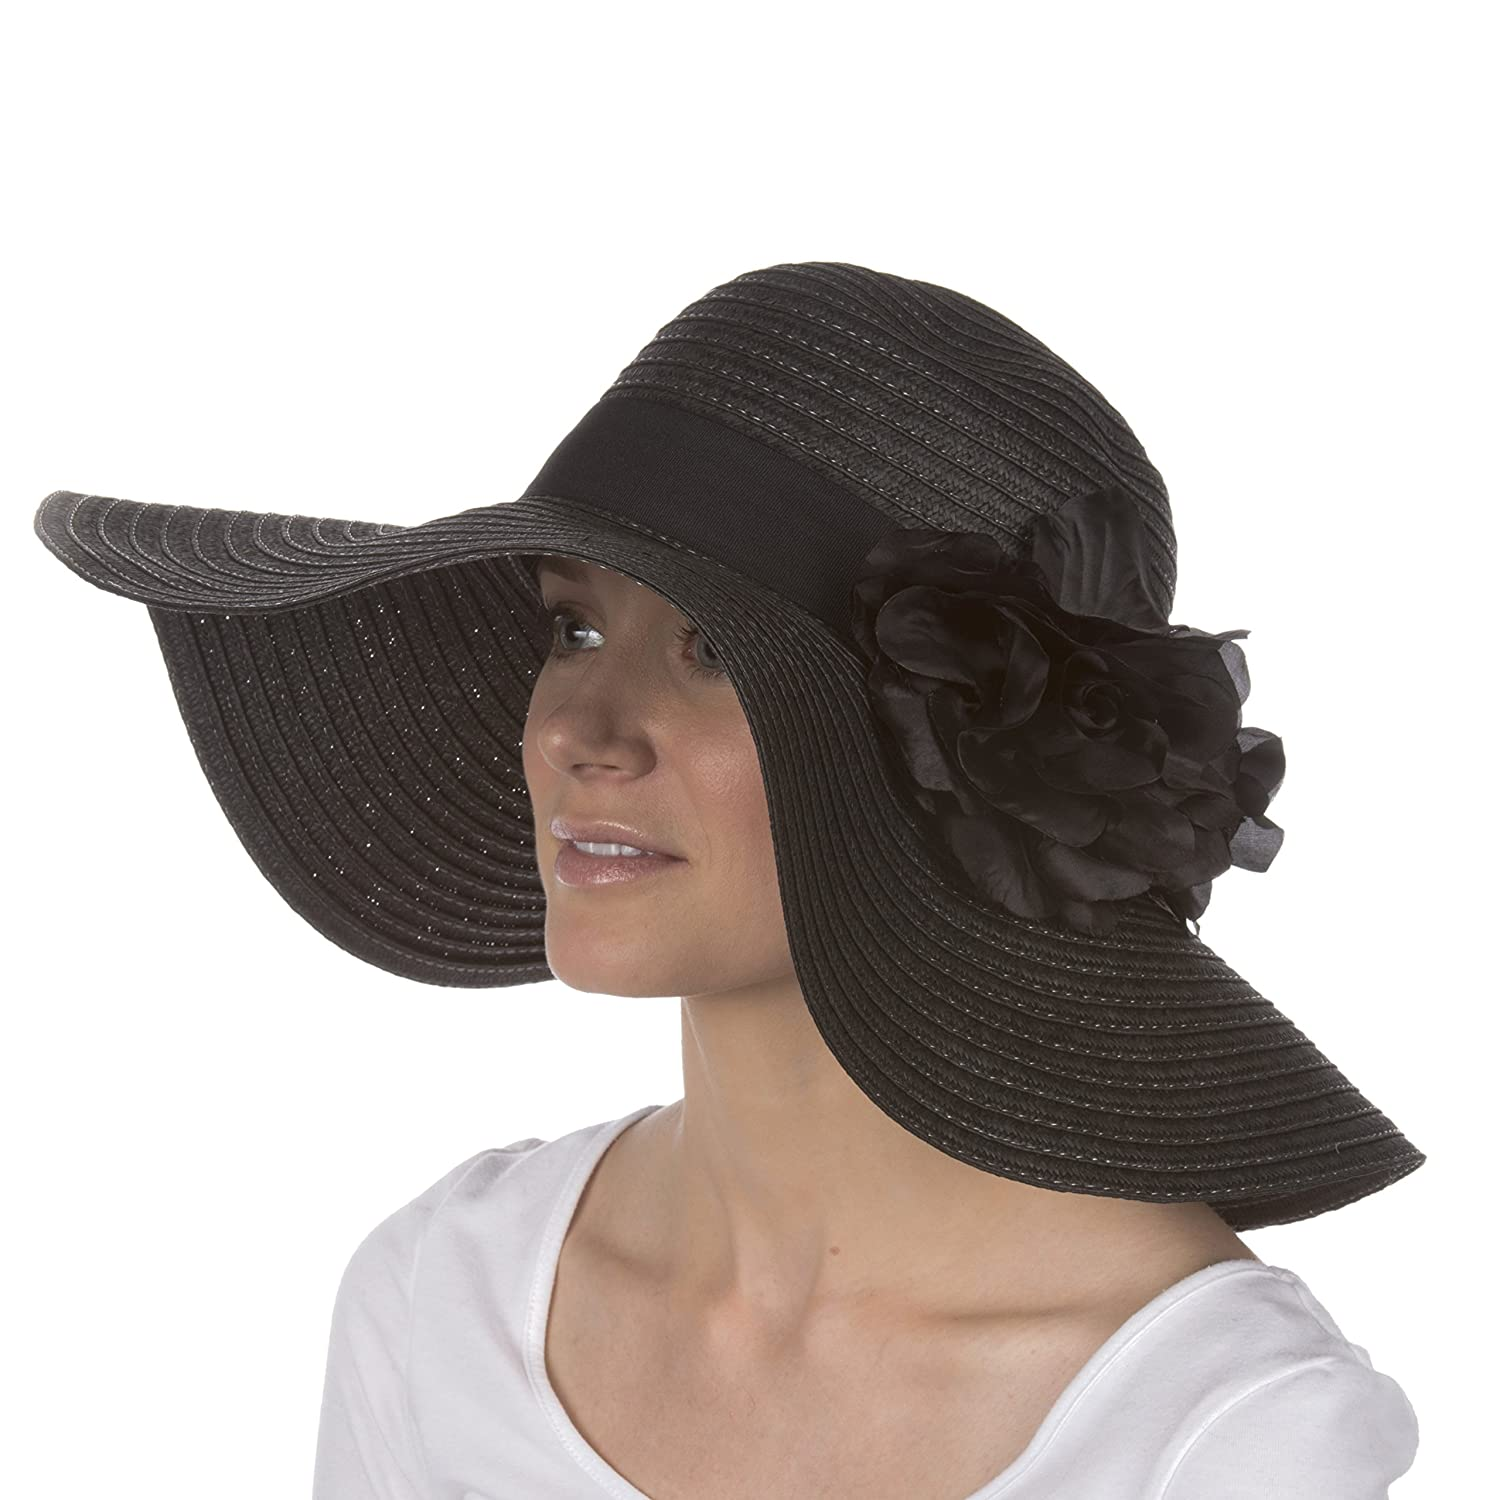 52298af862c79 Sakkas 6641LF Daisy UPF 50+ 100% Paper Straw Flower Accent Wide Brim Floppy  Hat - Black- One Size at Amazon Women's Clothing store: Sun Hats